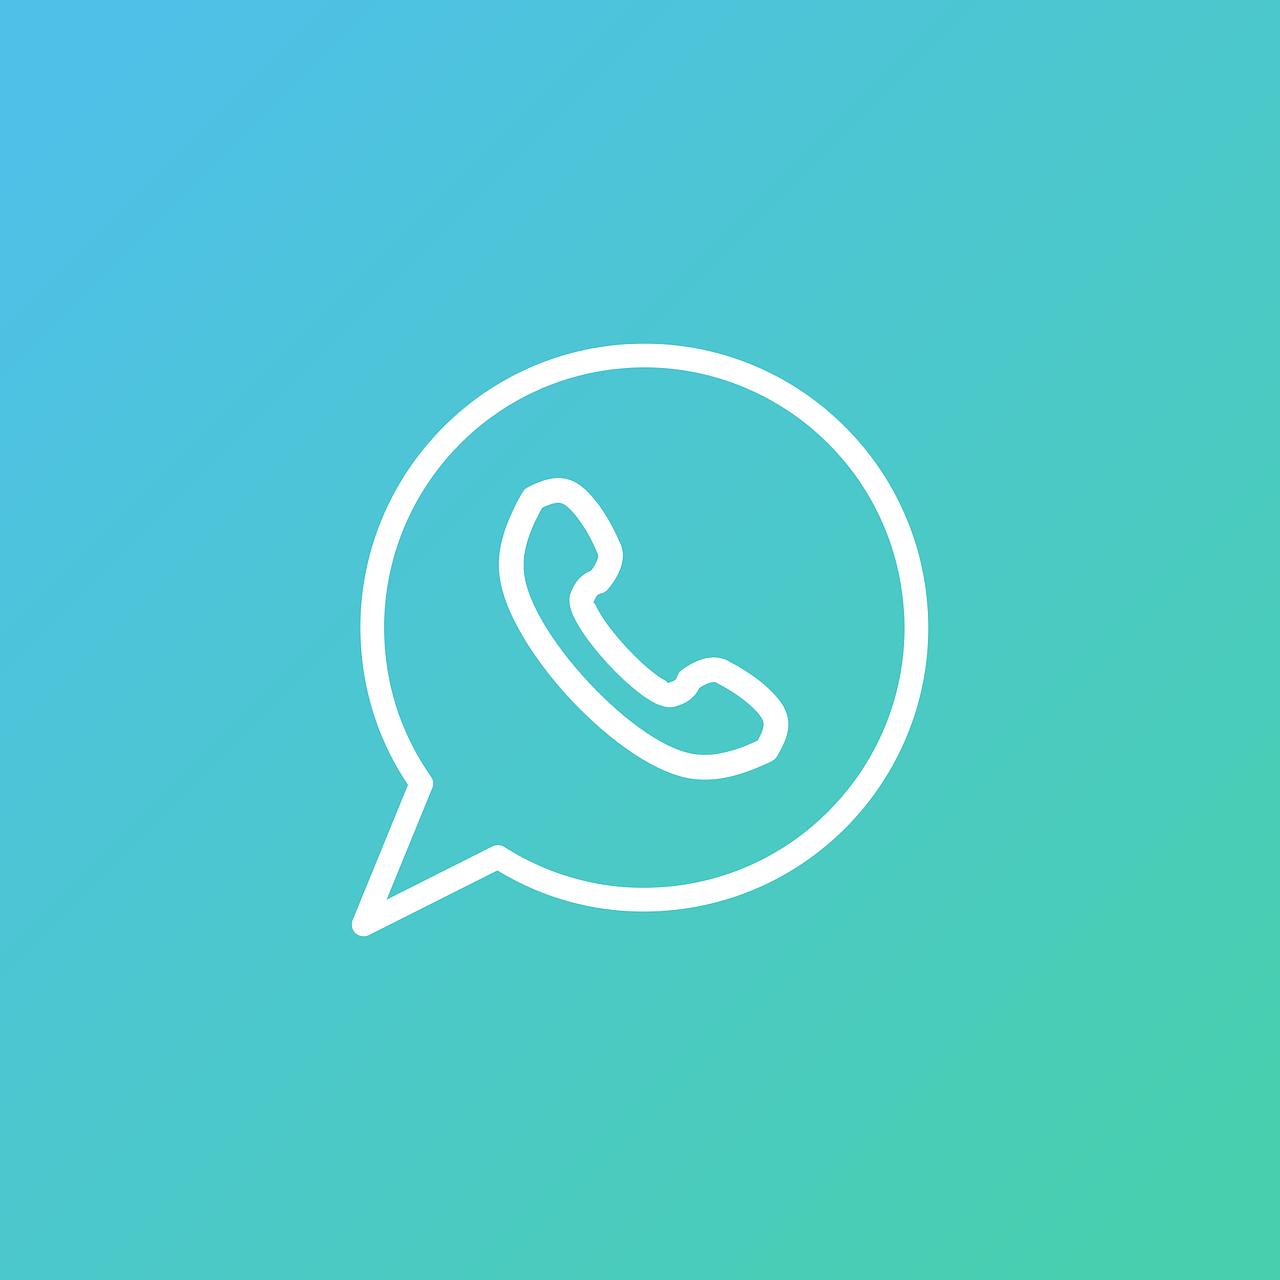 whatsapp, whats, whatsapp icon